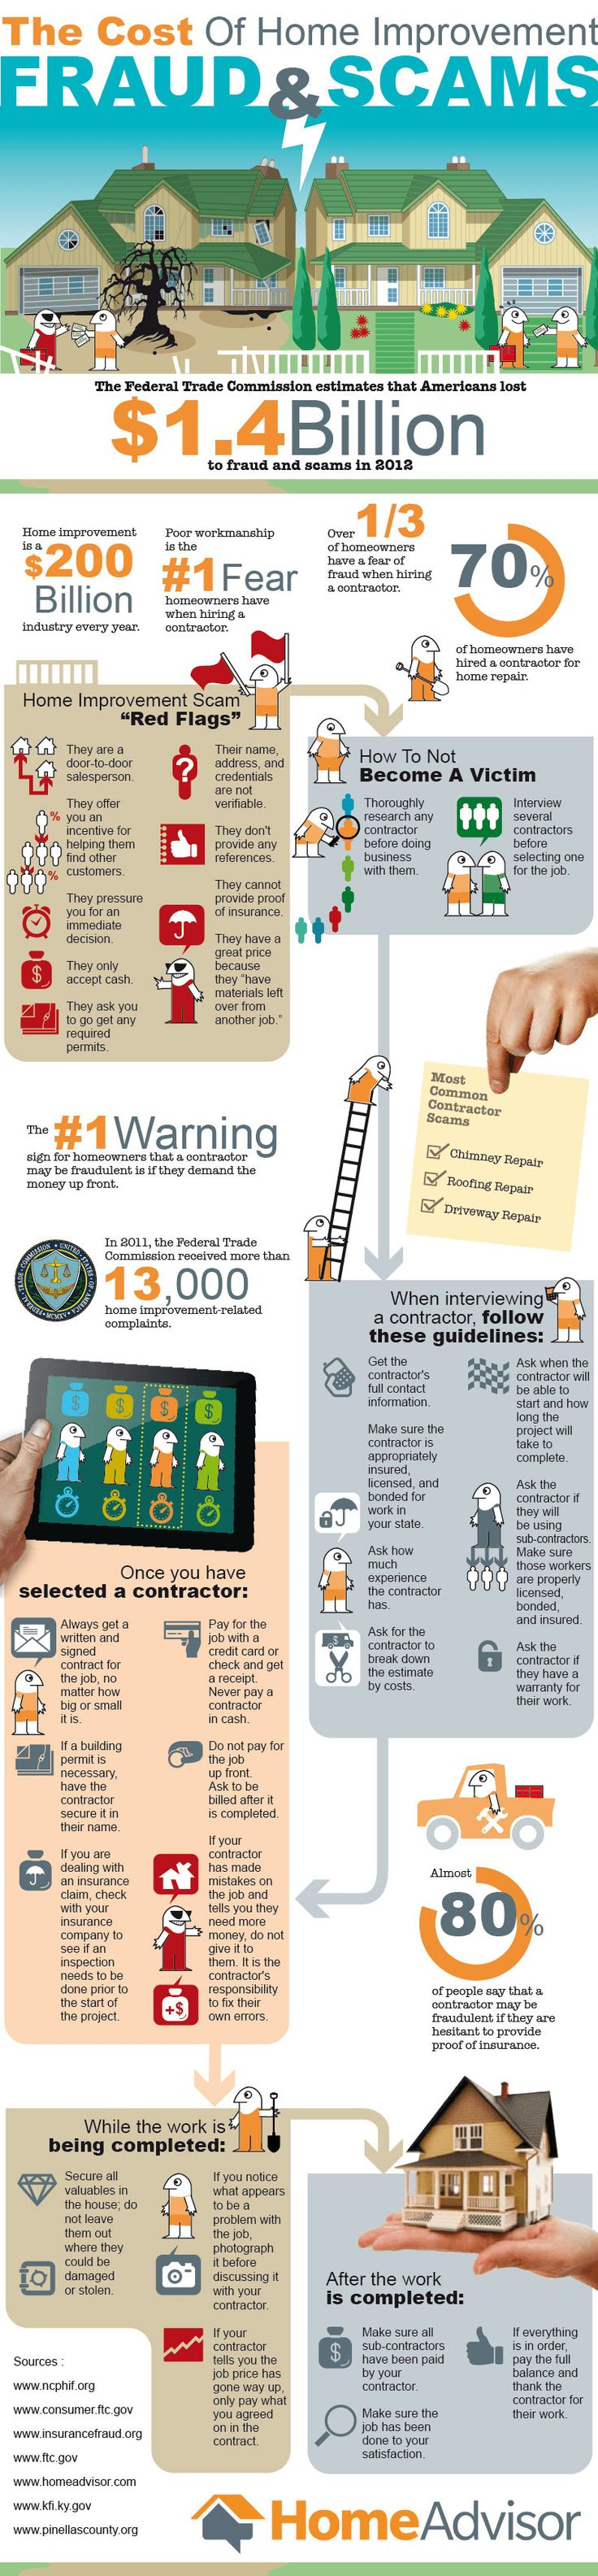 Infographic: The Cost of Home Improvement Fraud - Home Improvement - realtor.com